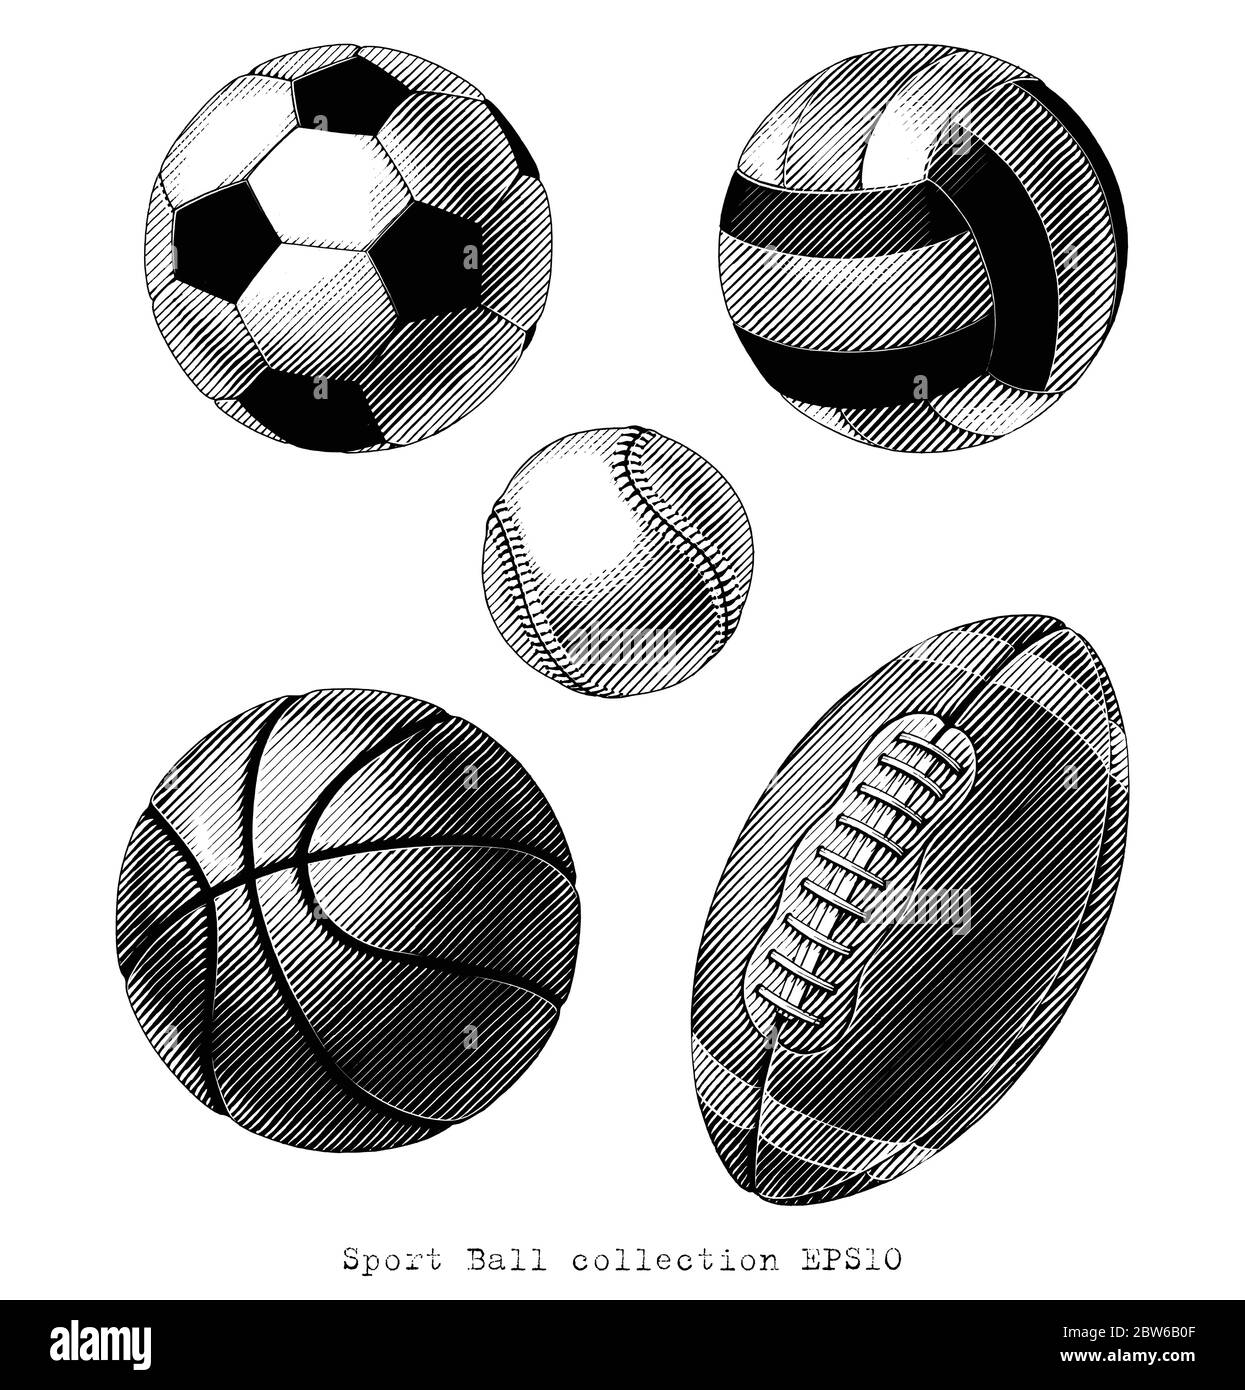 Sport Ball collection hand draw vinatge style black and white clip art isolated on white background Stock Vector